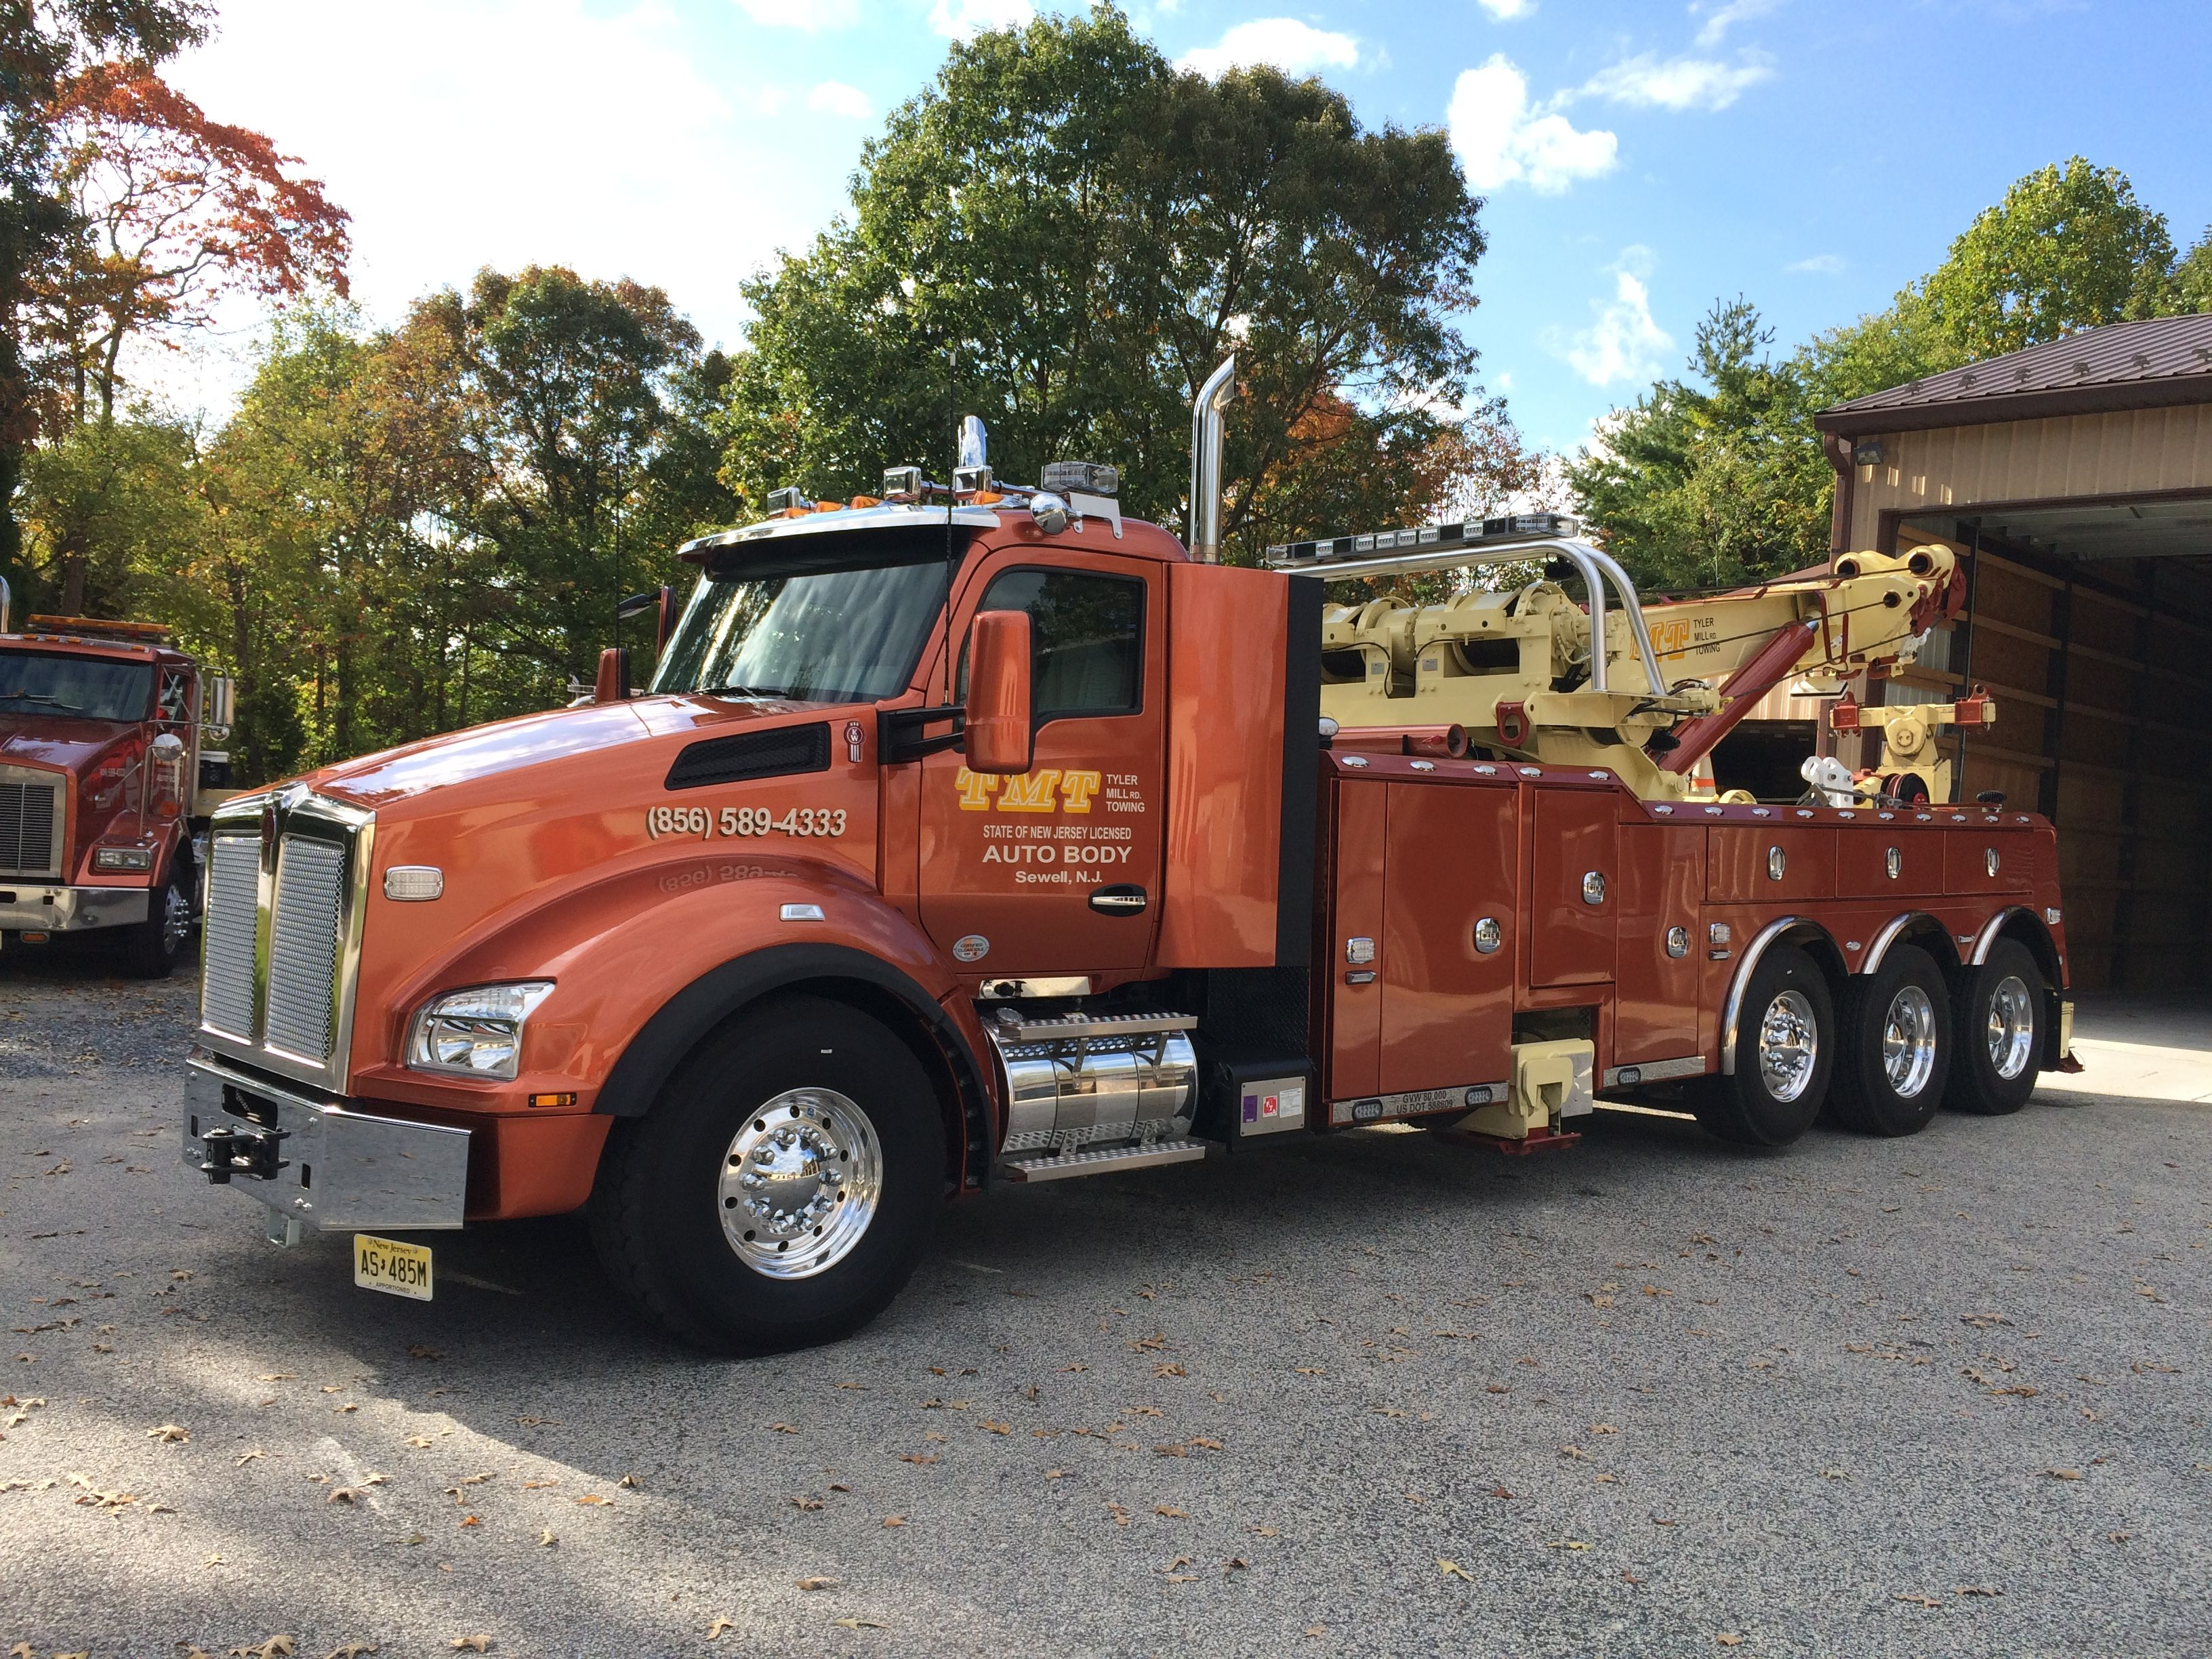 kenworth t880 big kenworth t880 wreckers pinterest tow truck emergency towing and rigs. Black Bedroom Furniture Sets. Home Design Ideas